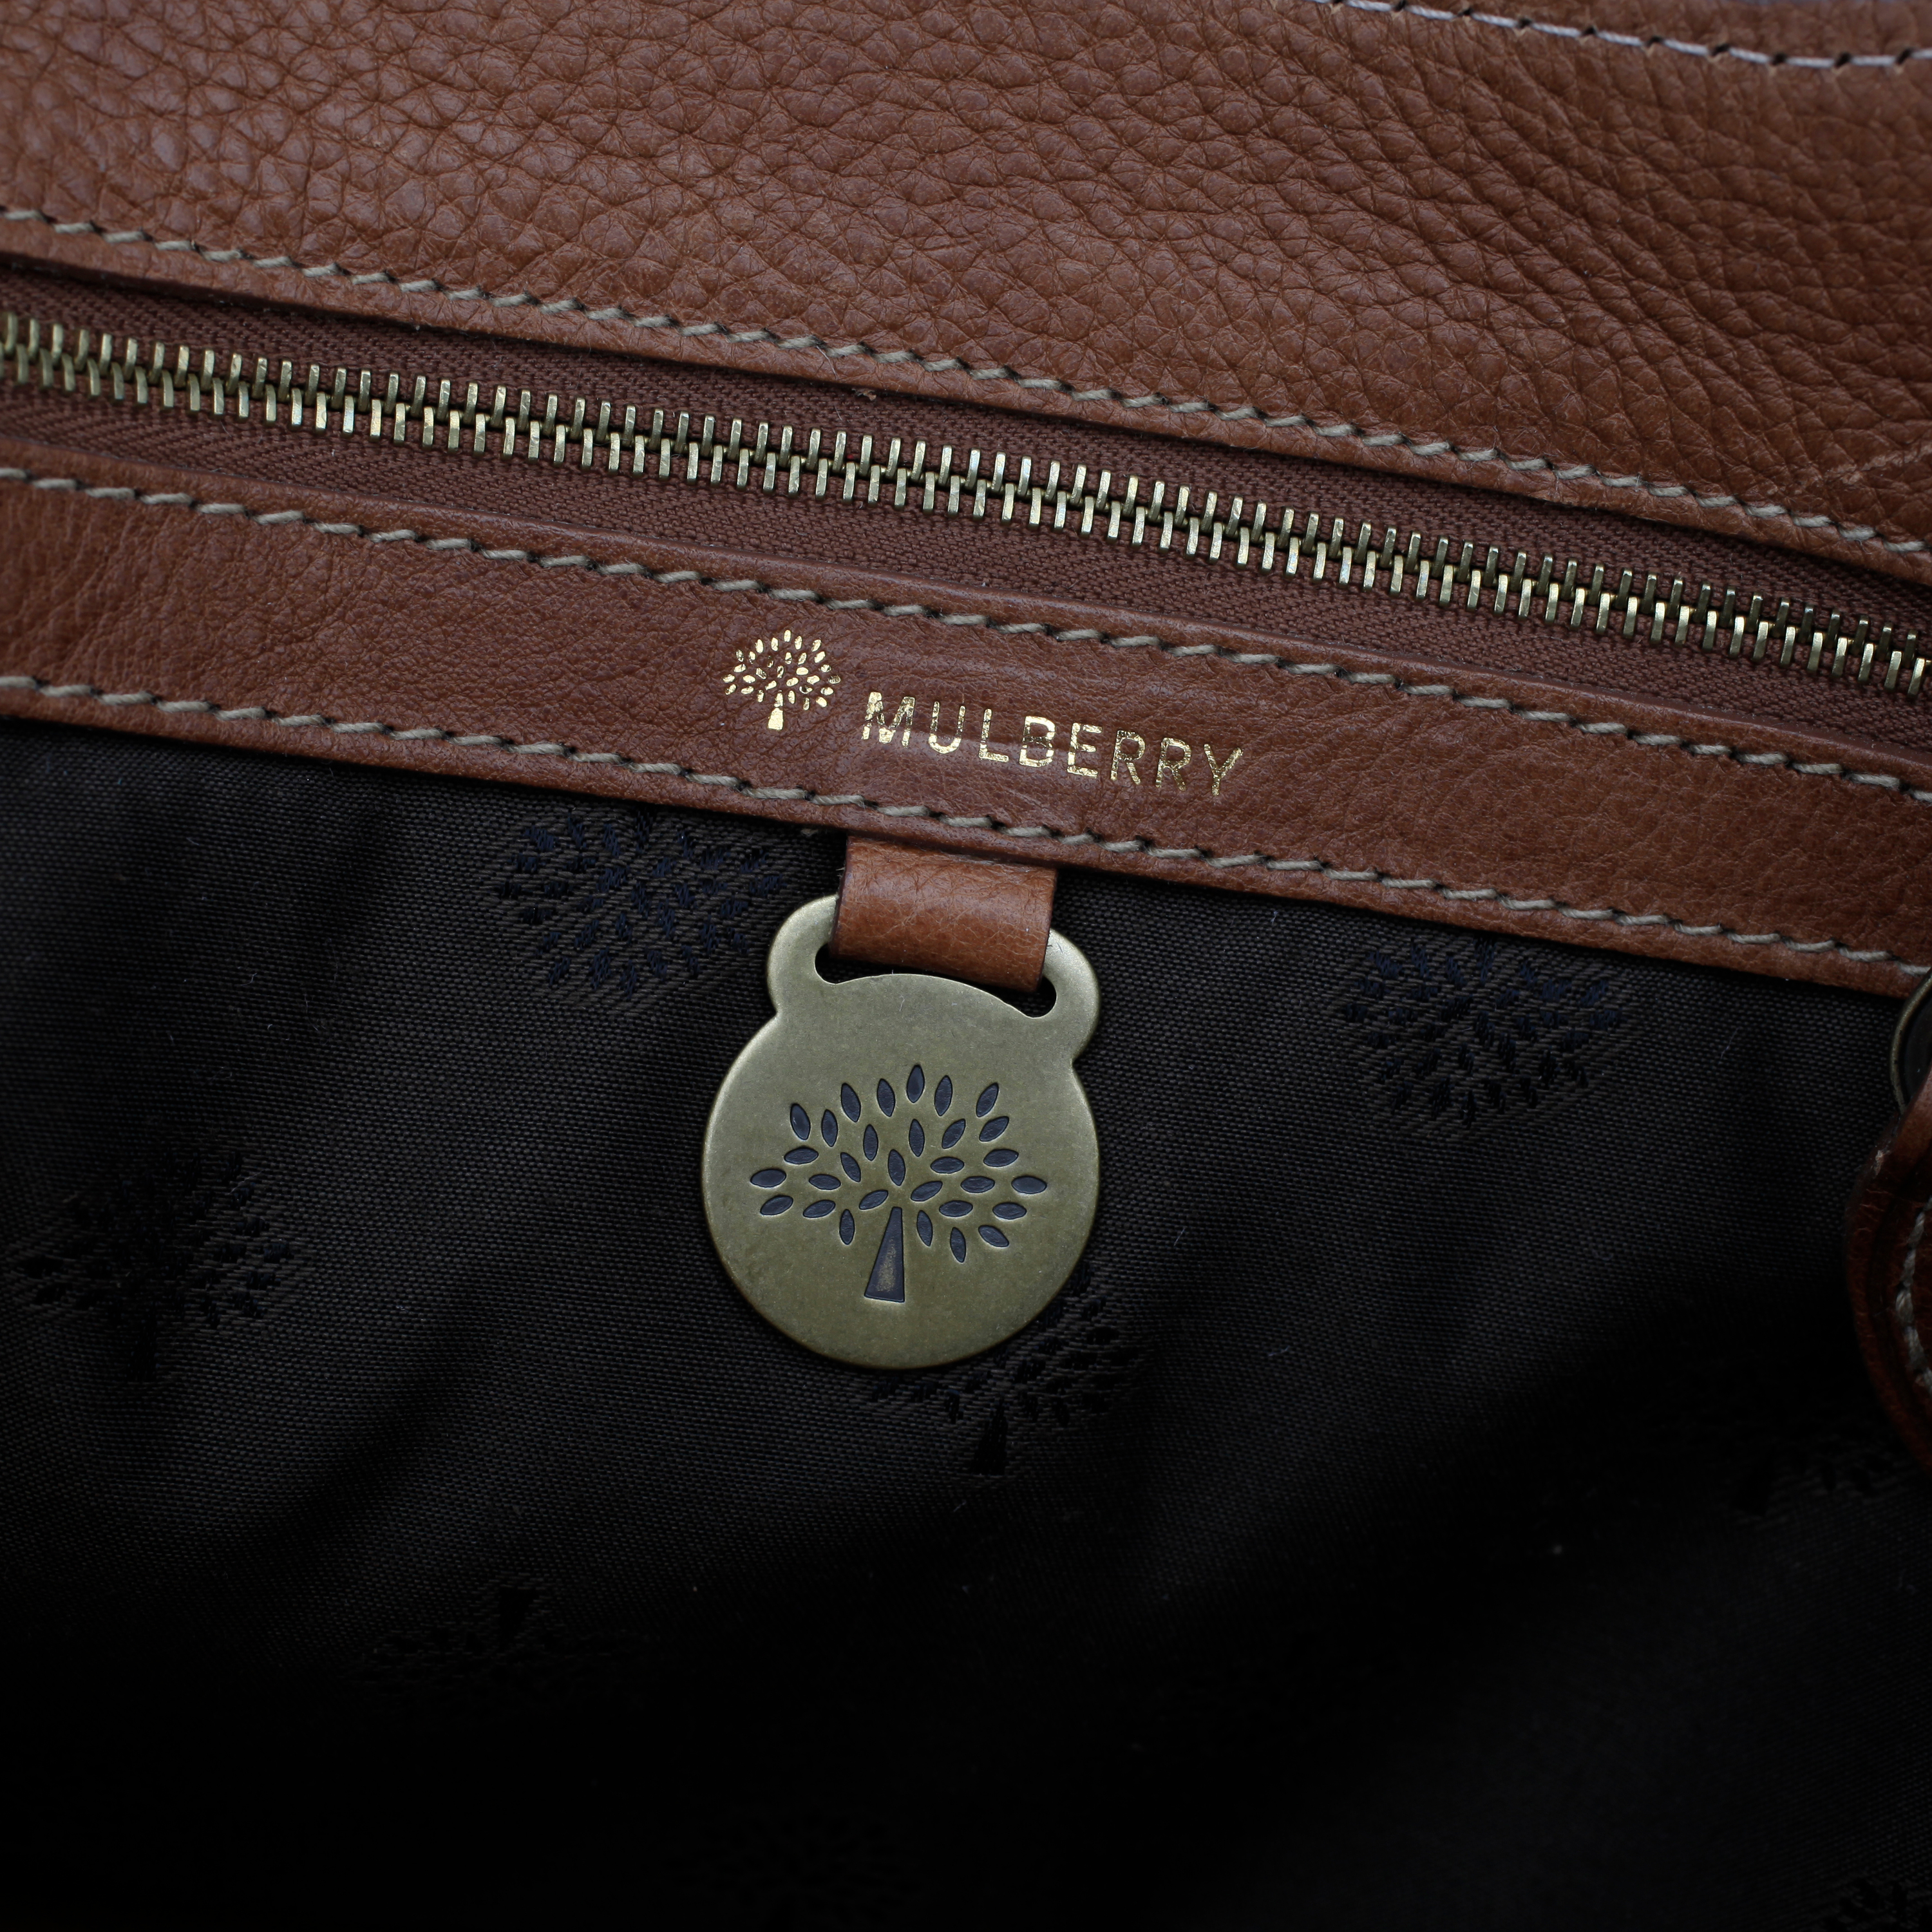 450b43faad9 MULBERRY, a brown leather